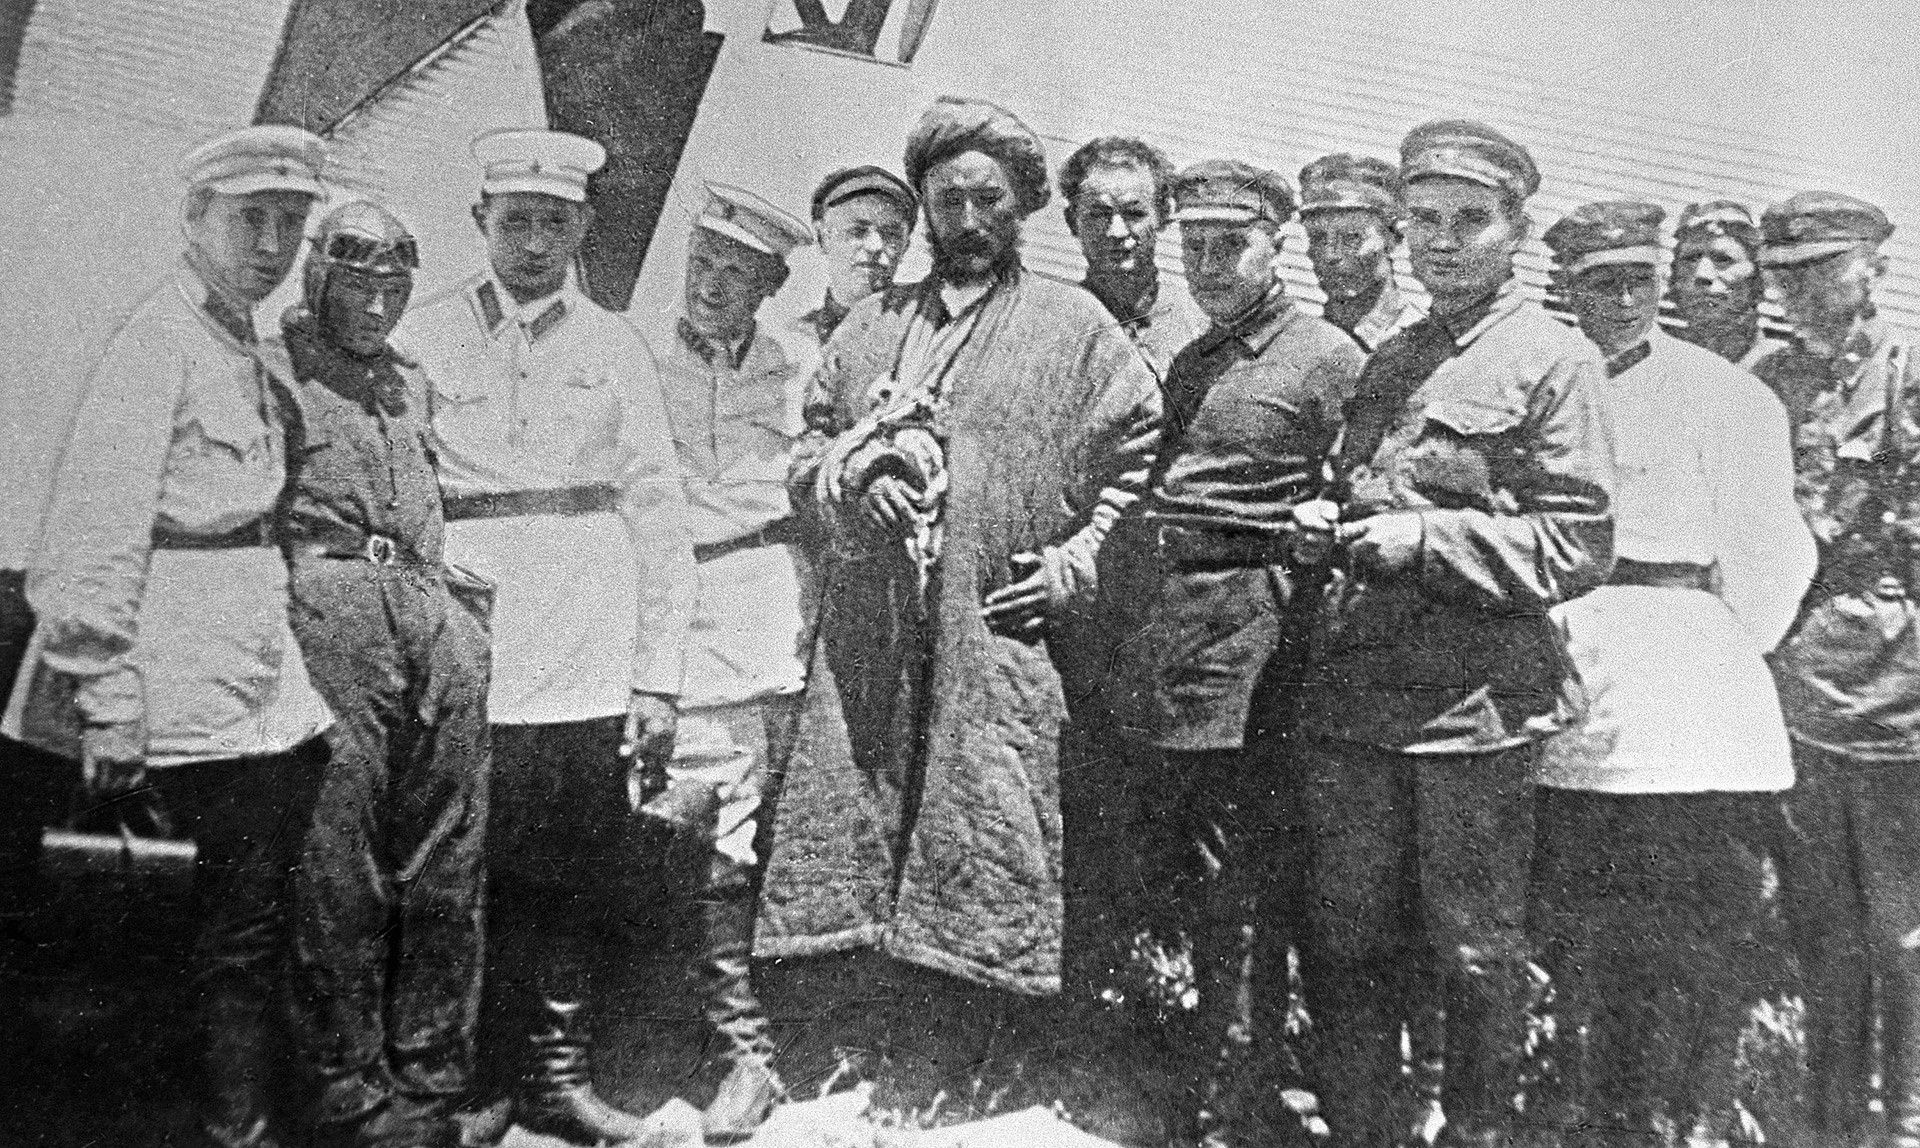 A group of the OGPU officers with captured Ibrahim Bek (center), leader of the Basmachi rebels.